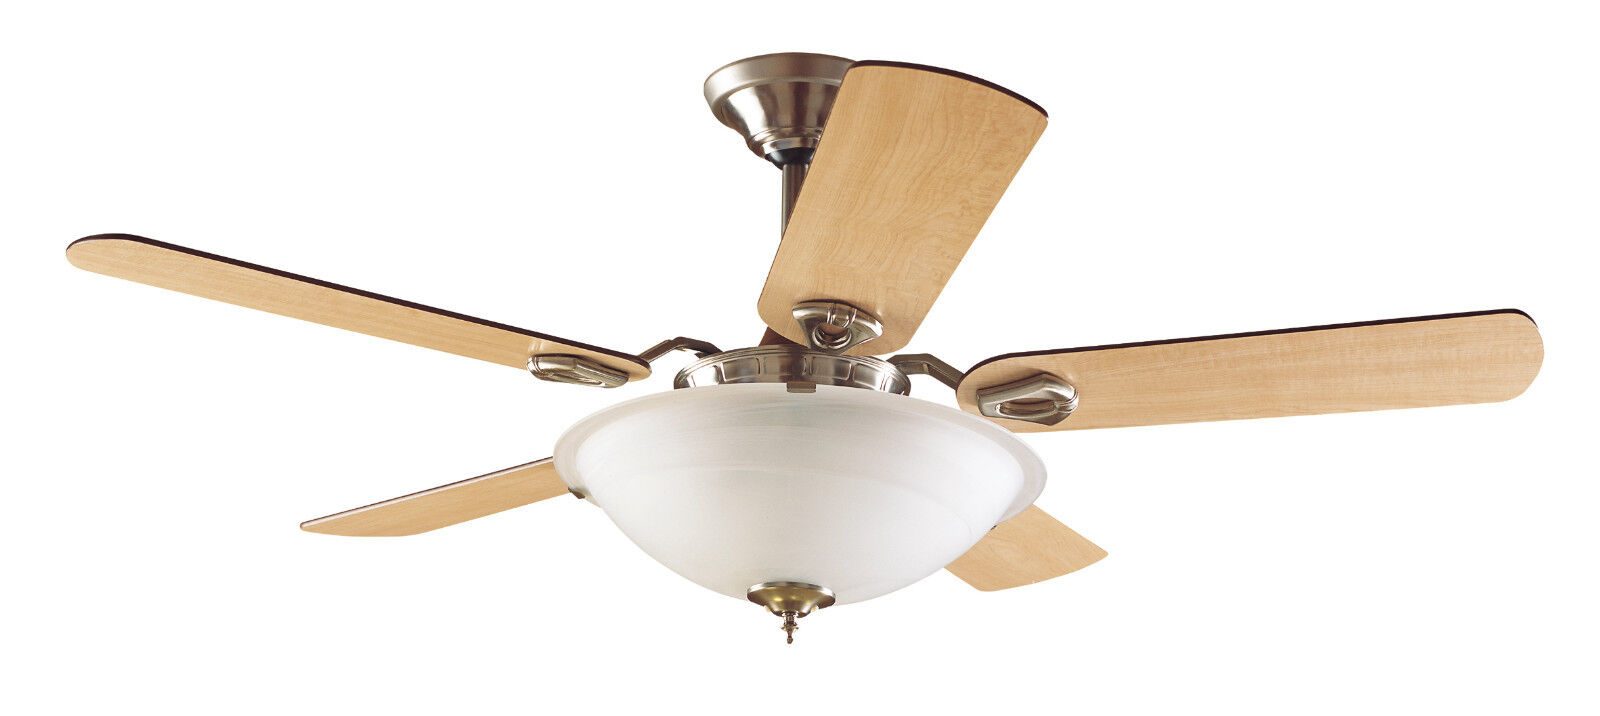 Hunter ceiling fan light does not work : Hunter quot contemporary brushed nickel remote control